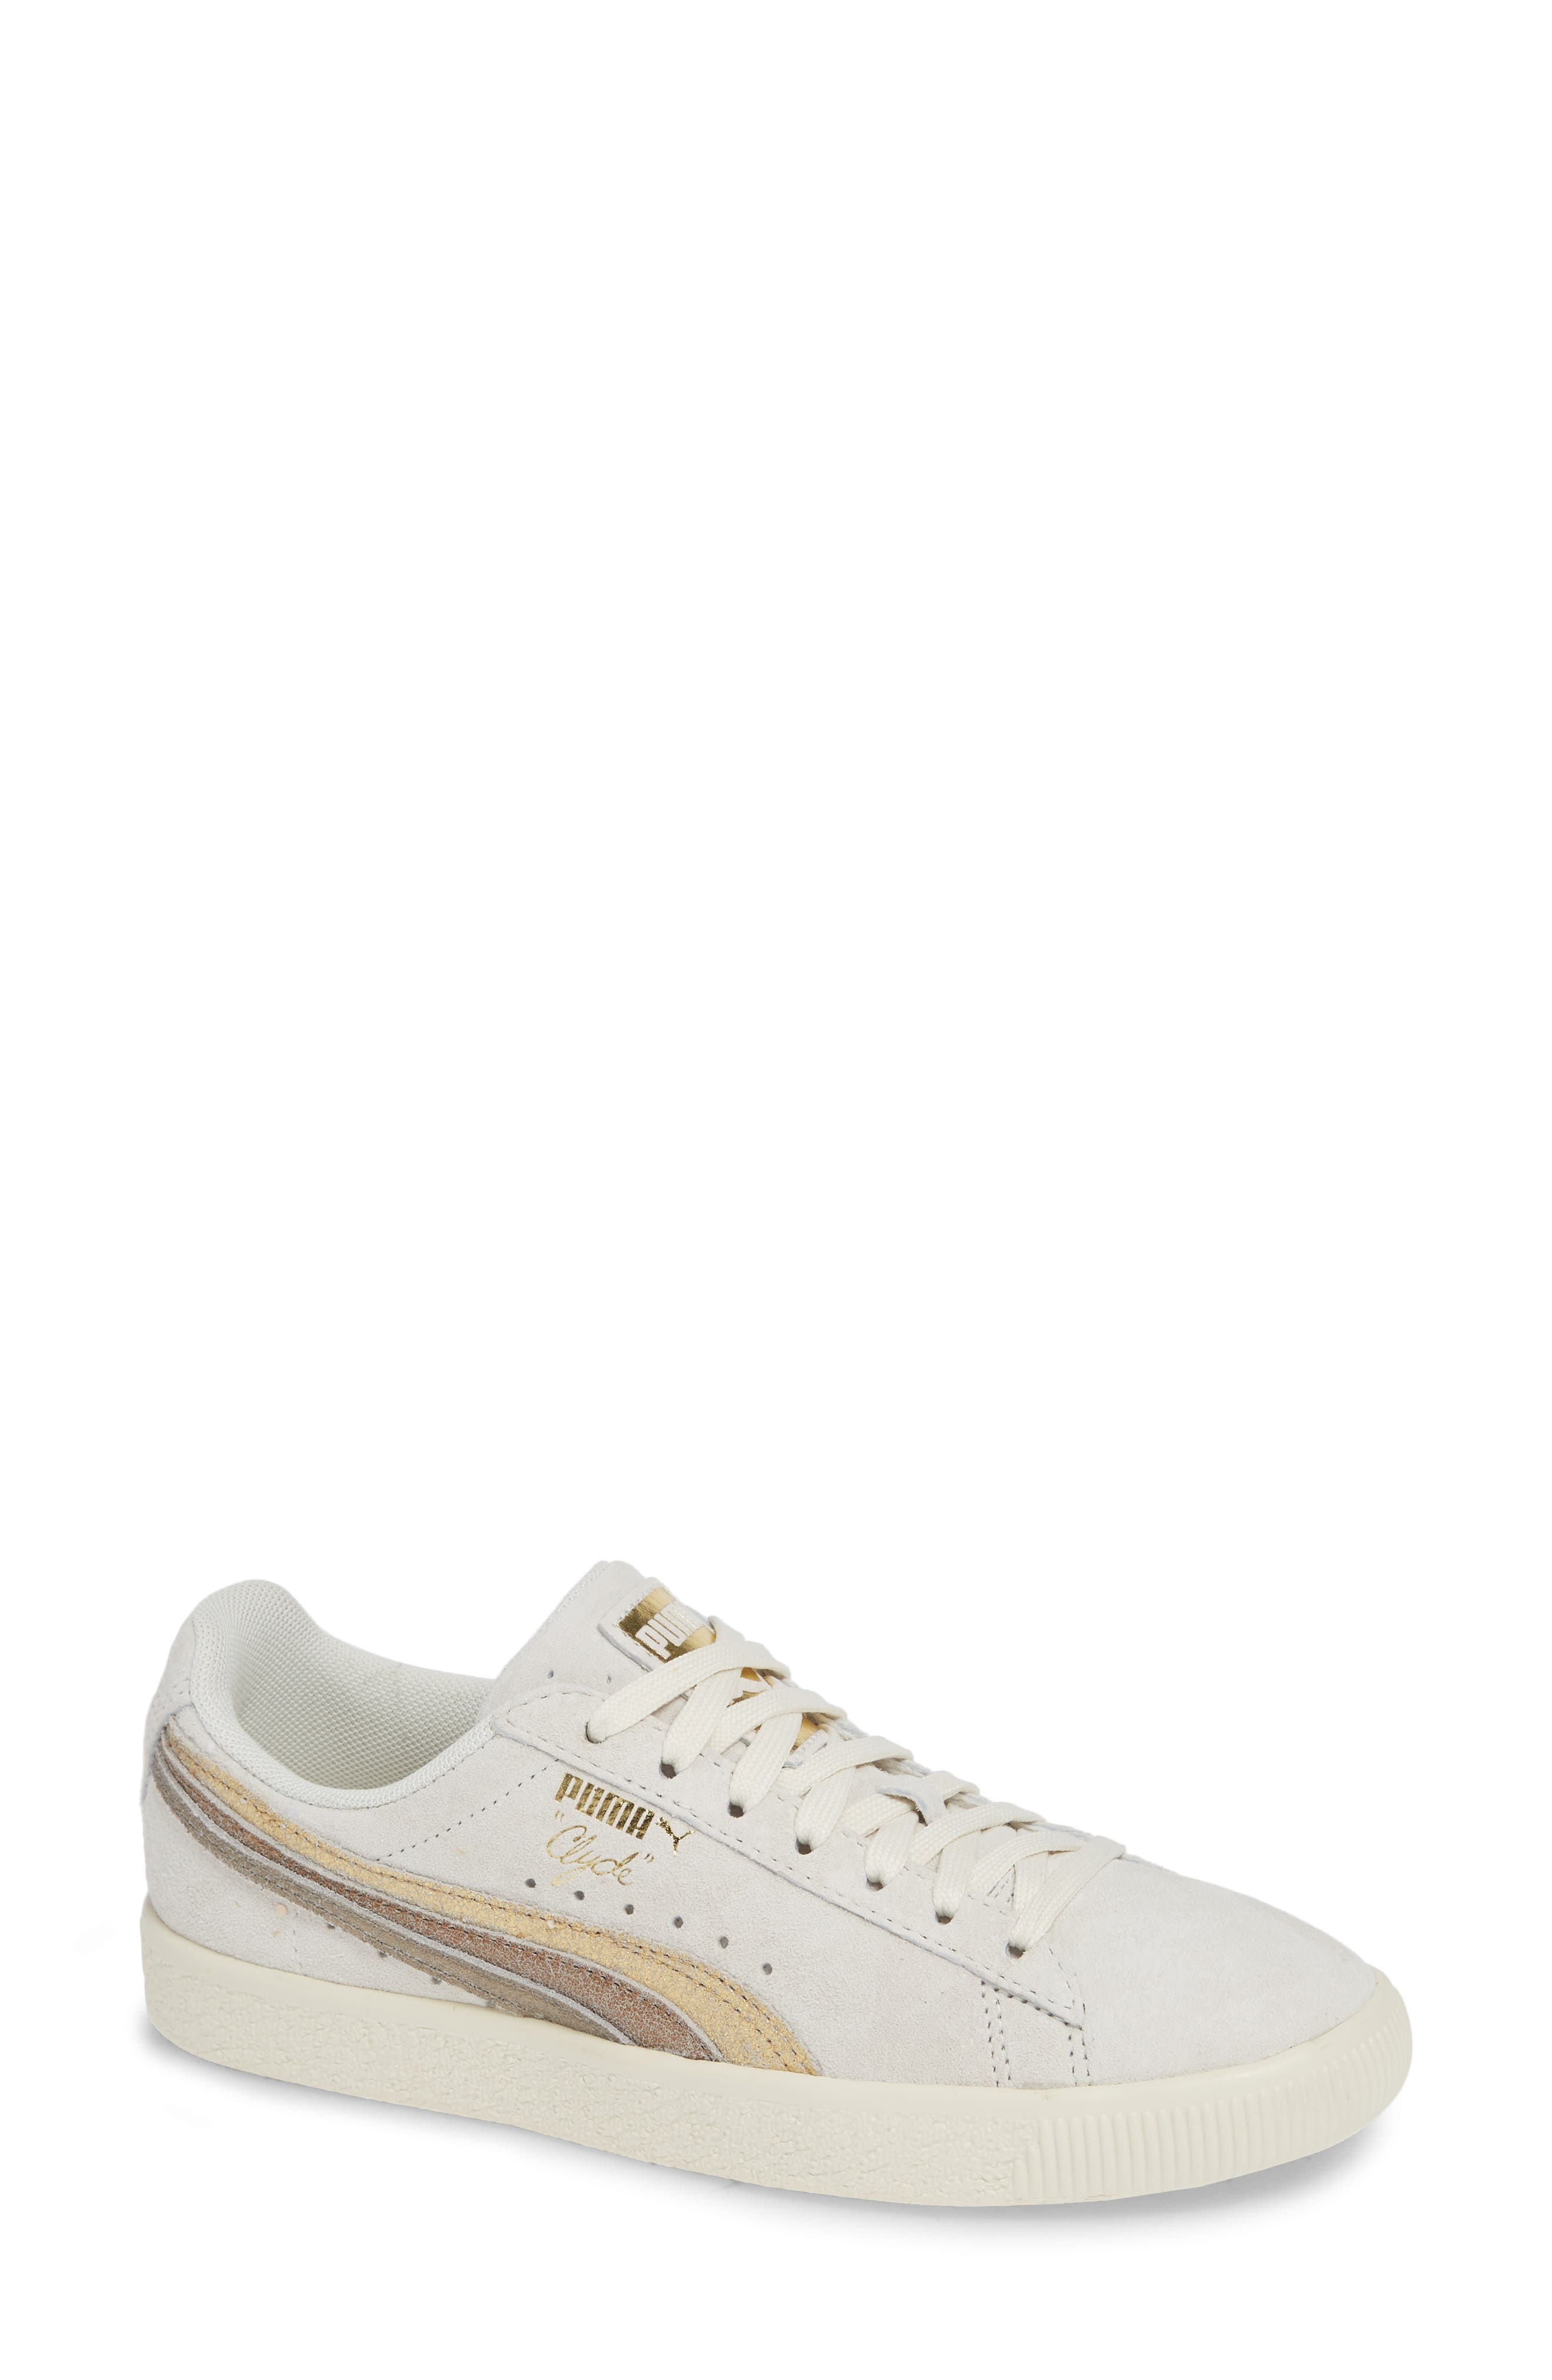 Clyde Sneaker,                         Main,                         color, WHITE